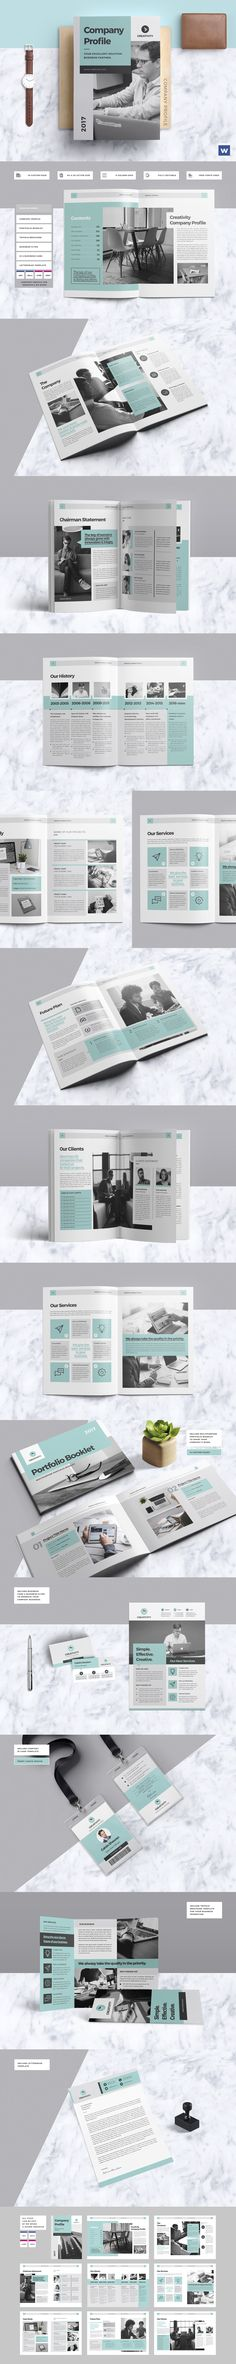 Clean & Professional Company Profile With Include Portfolio Booklet, Trifold Brochure, & More #template